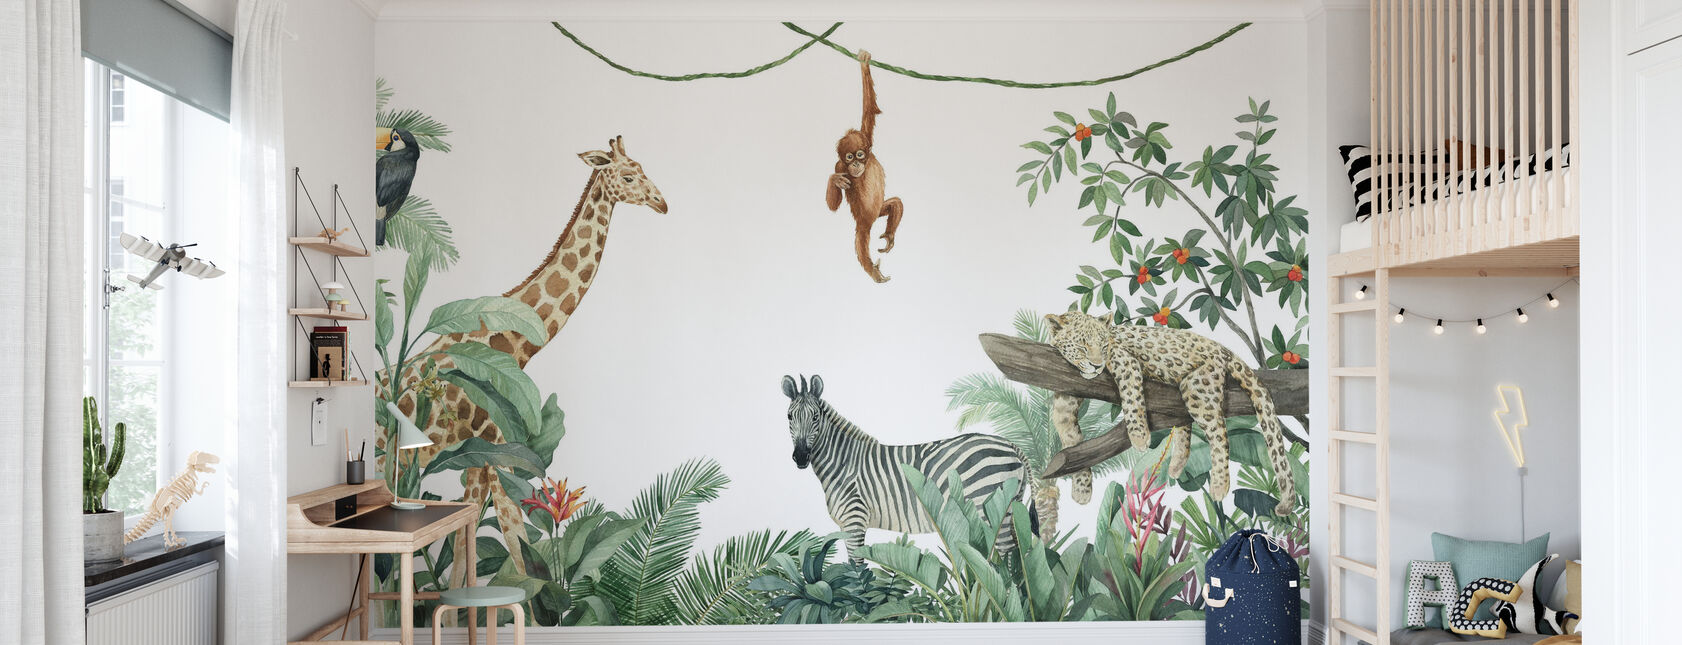 Jungle Vrienden - Behang - Kinderkamer